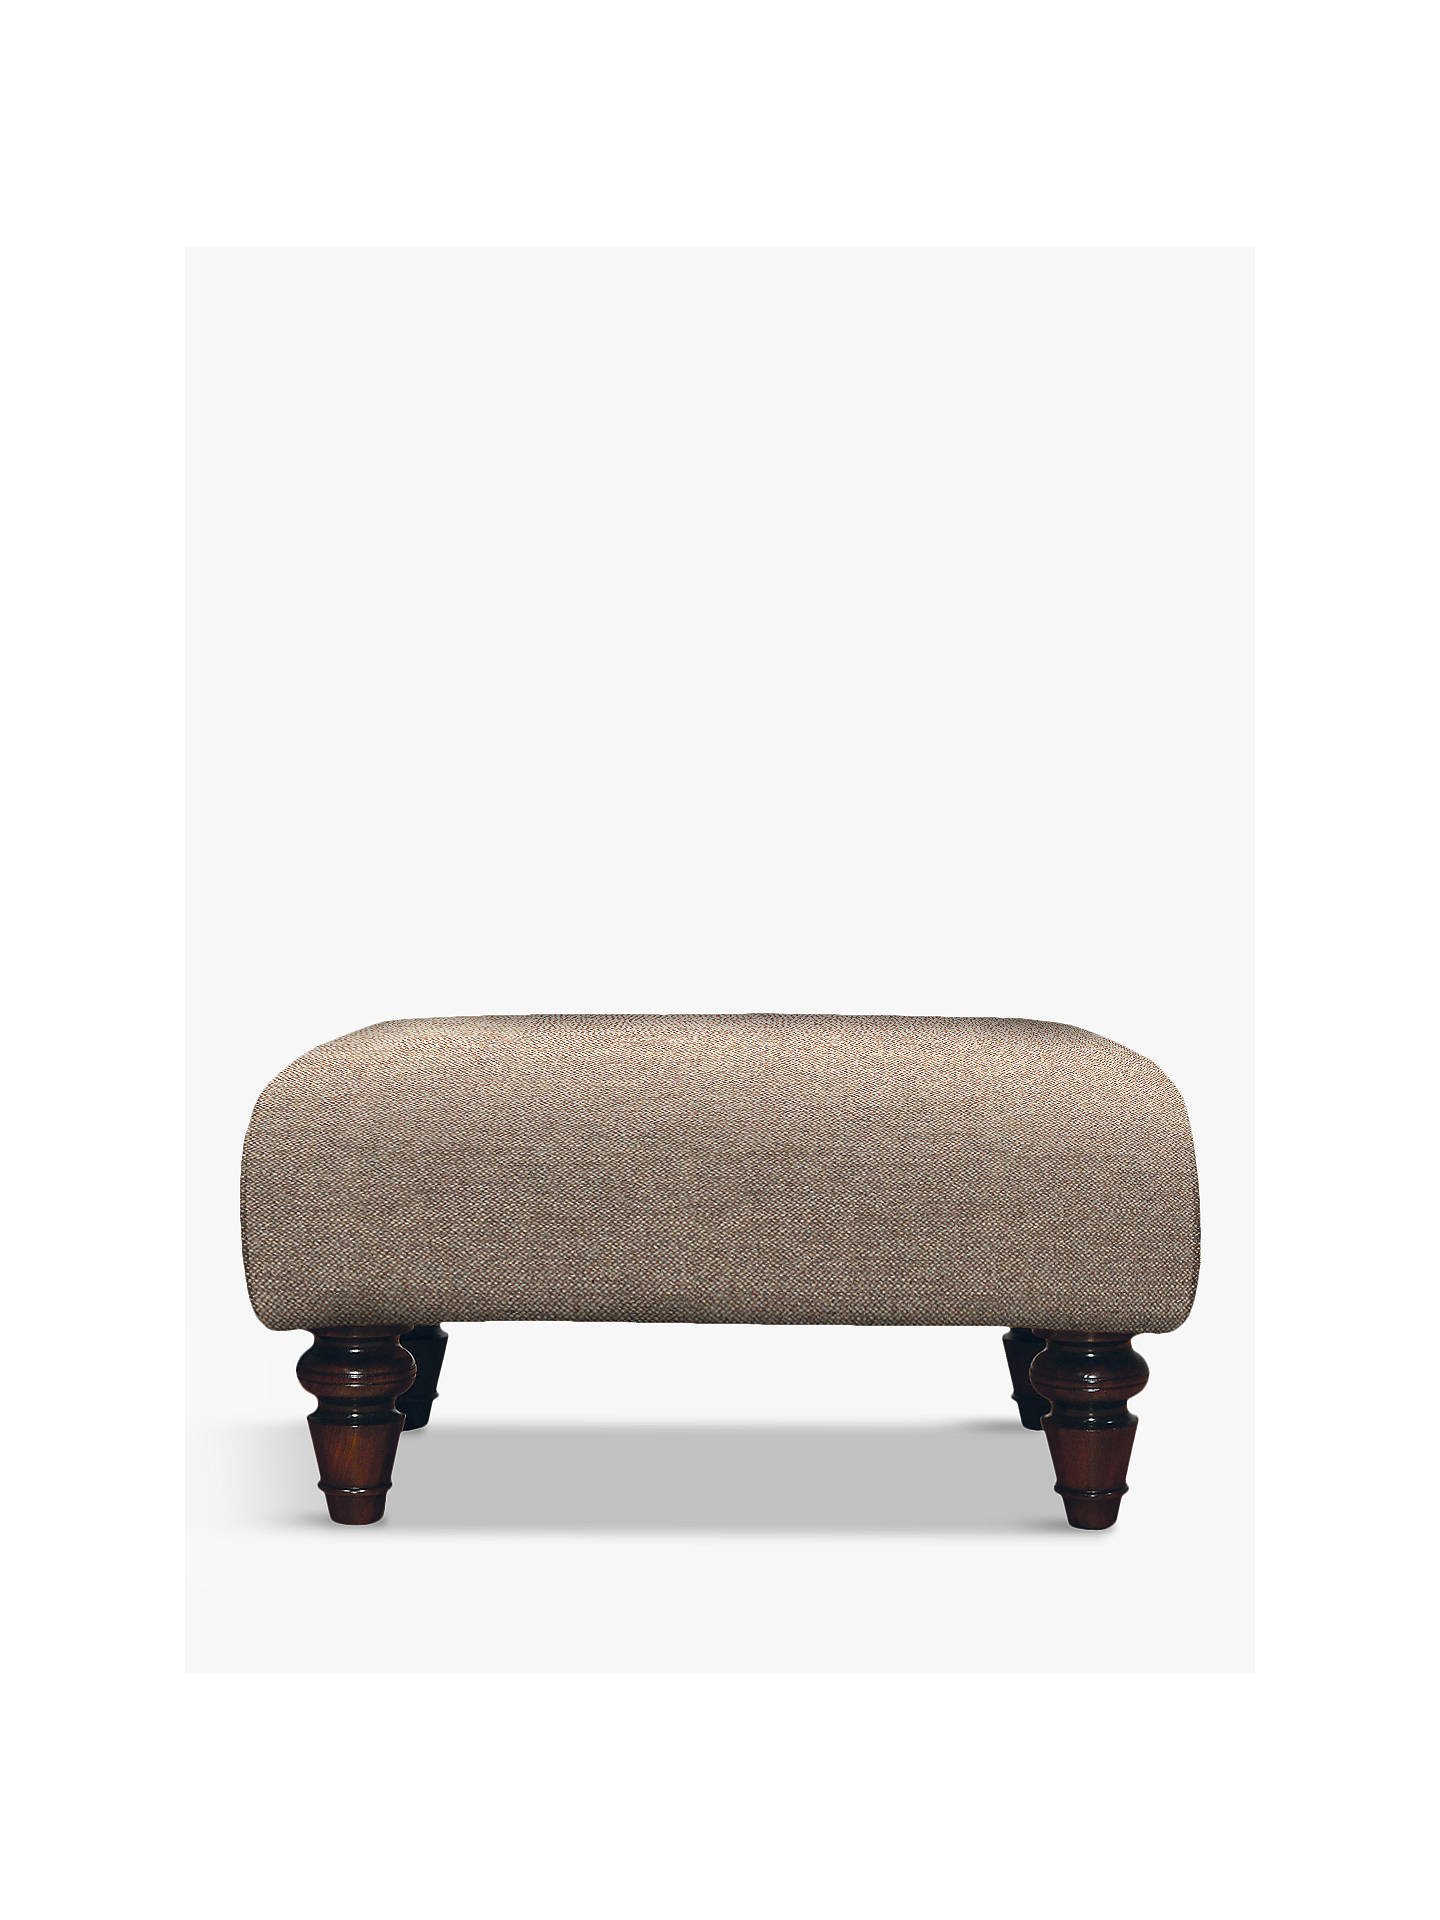 BuyTetrad Lewis Footstool, Mahogany Leg, Harris Tweed Heather Online at johnlewis.com